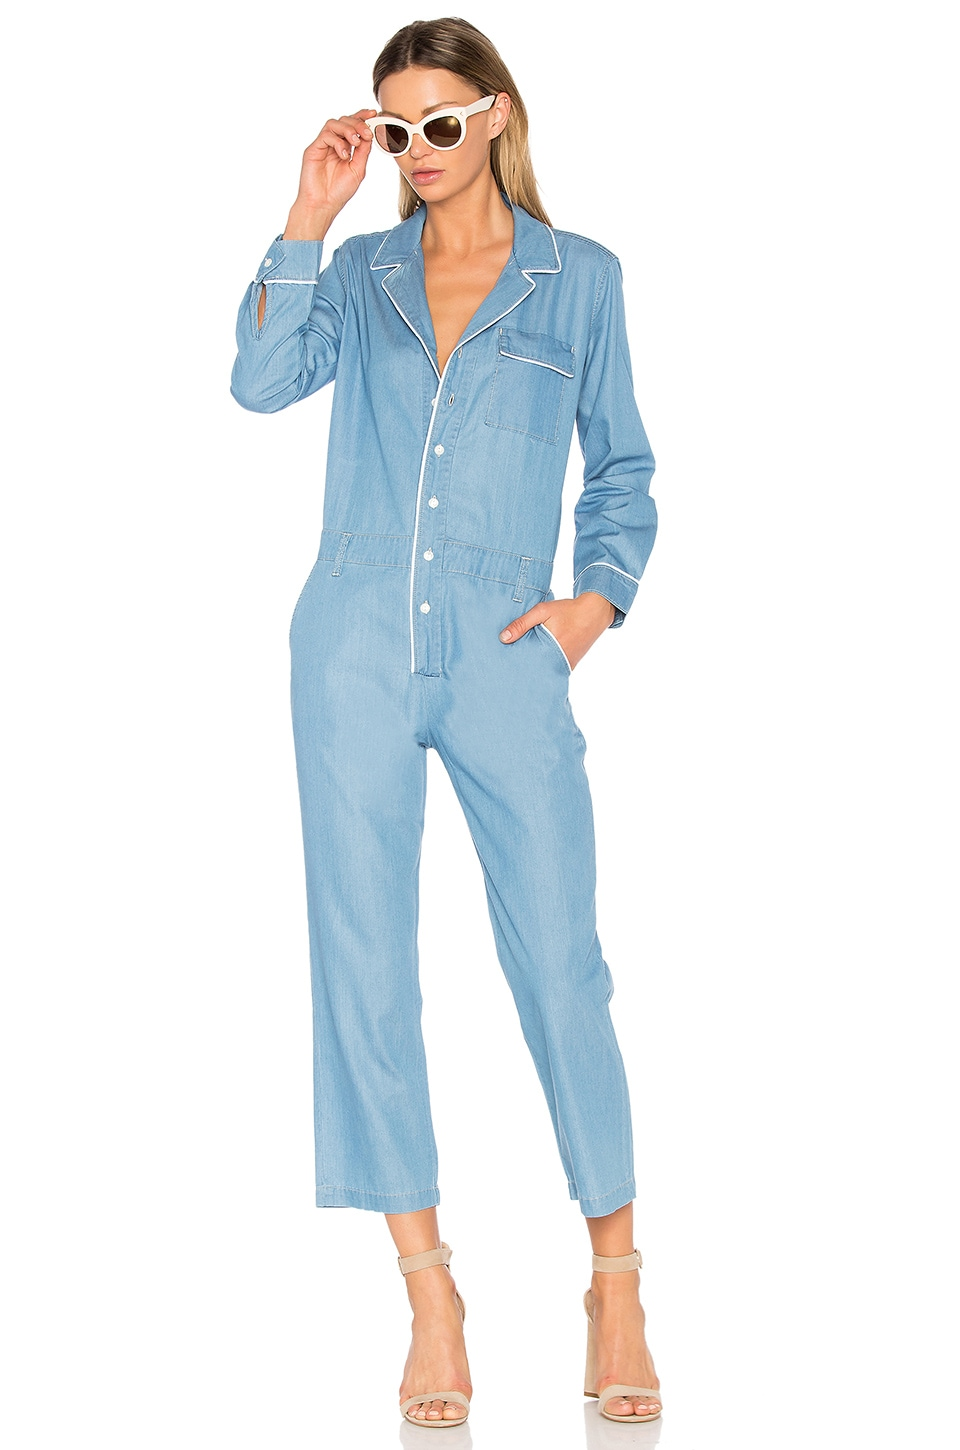 ei8ht dreams Boiler Jumpsuit in Light Wash